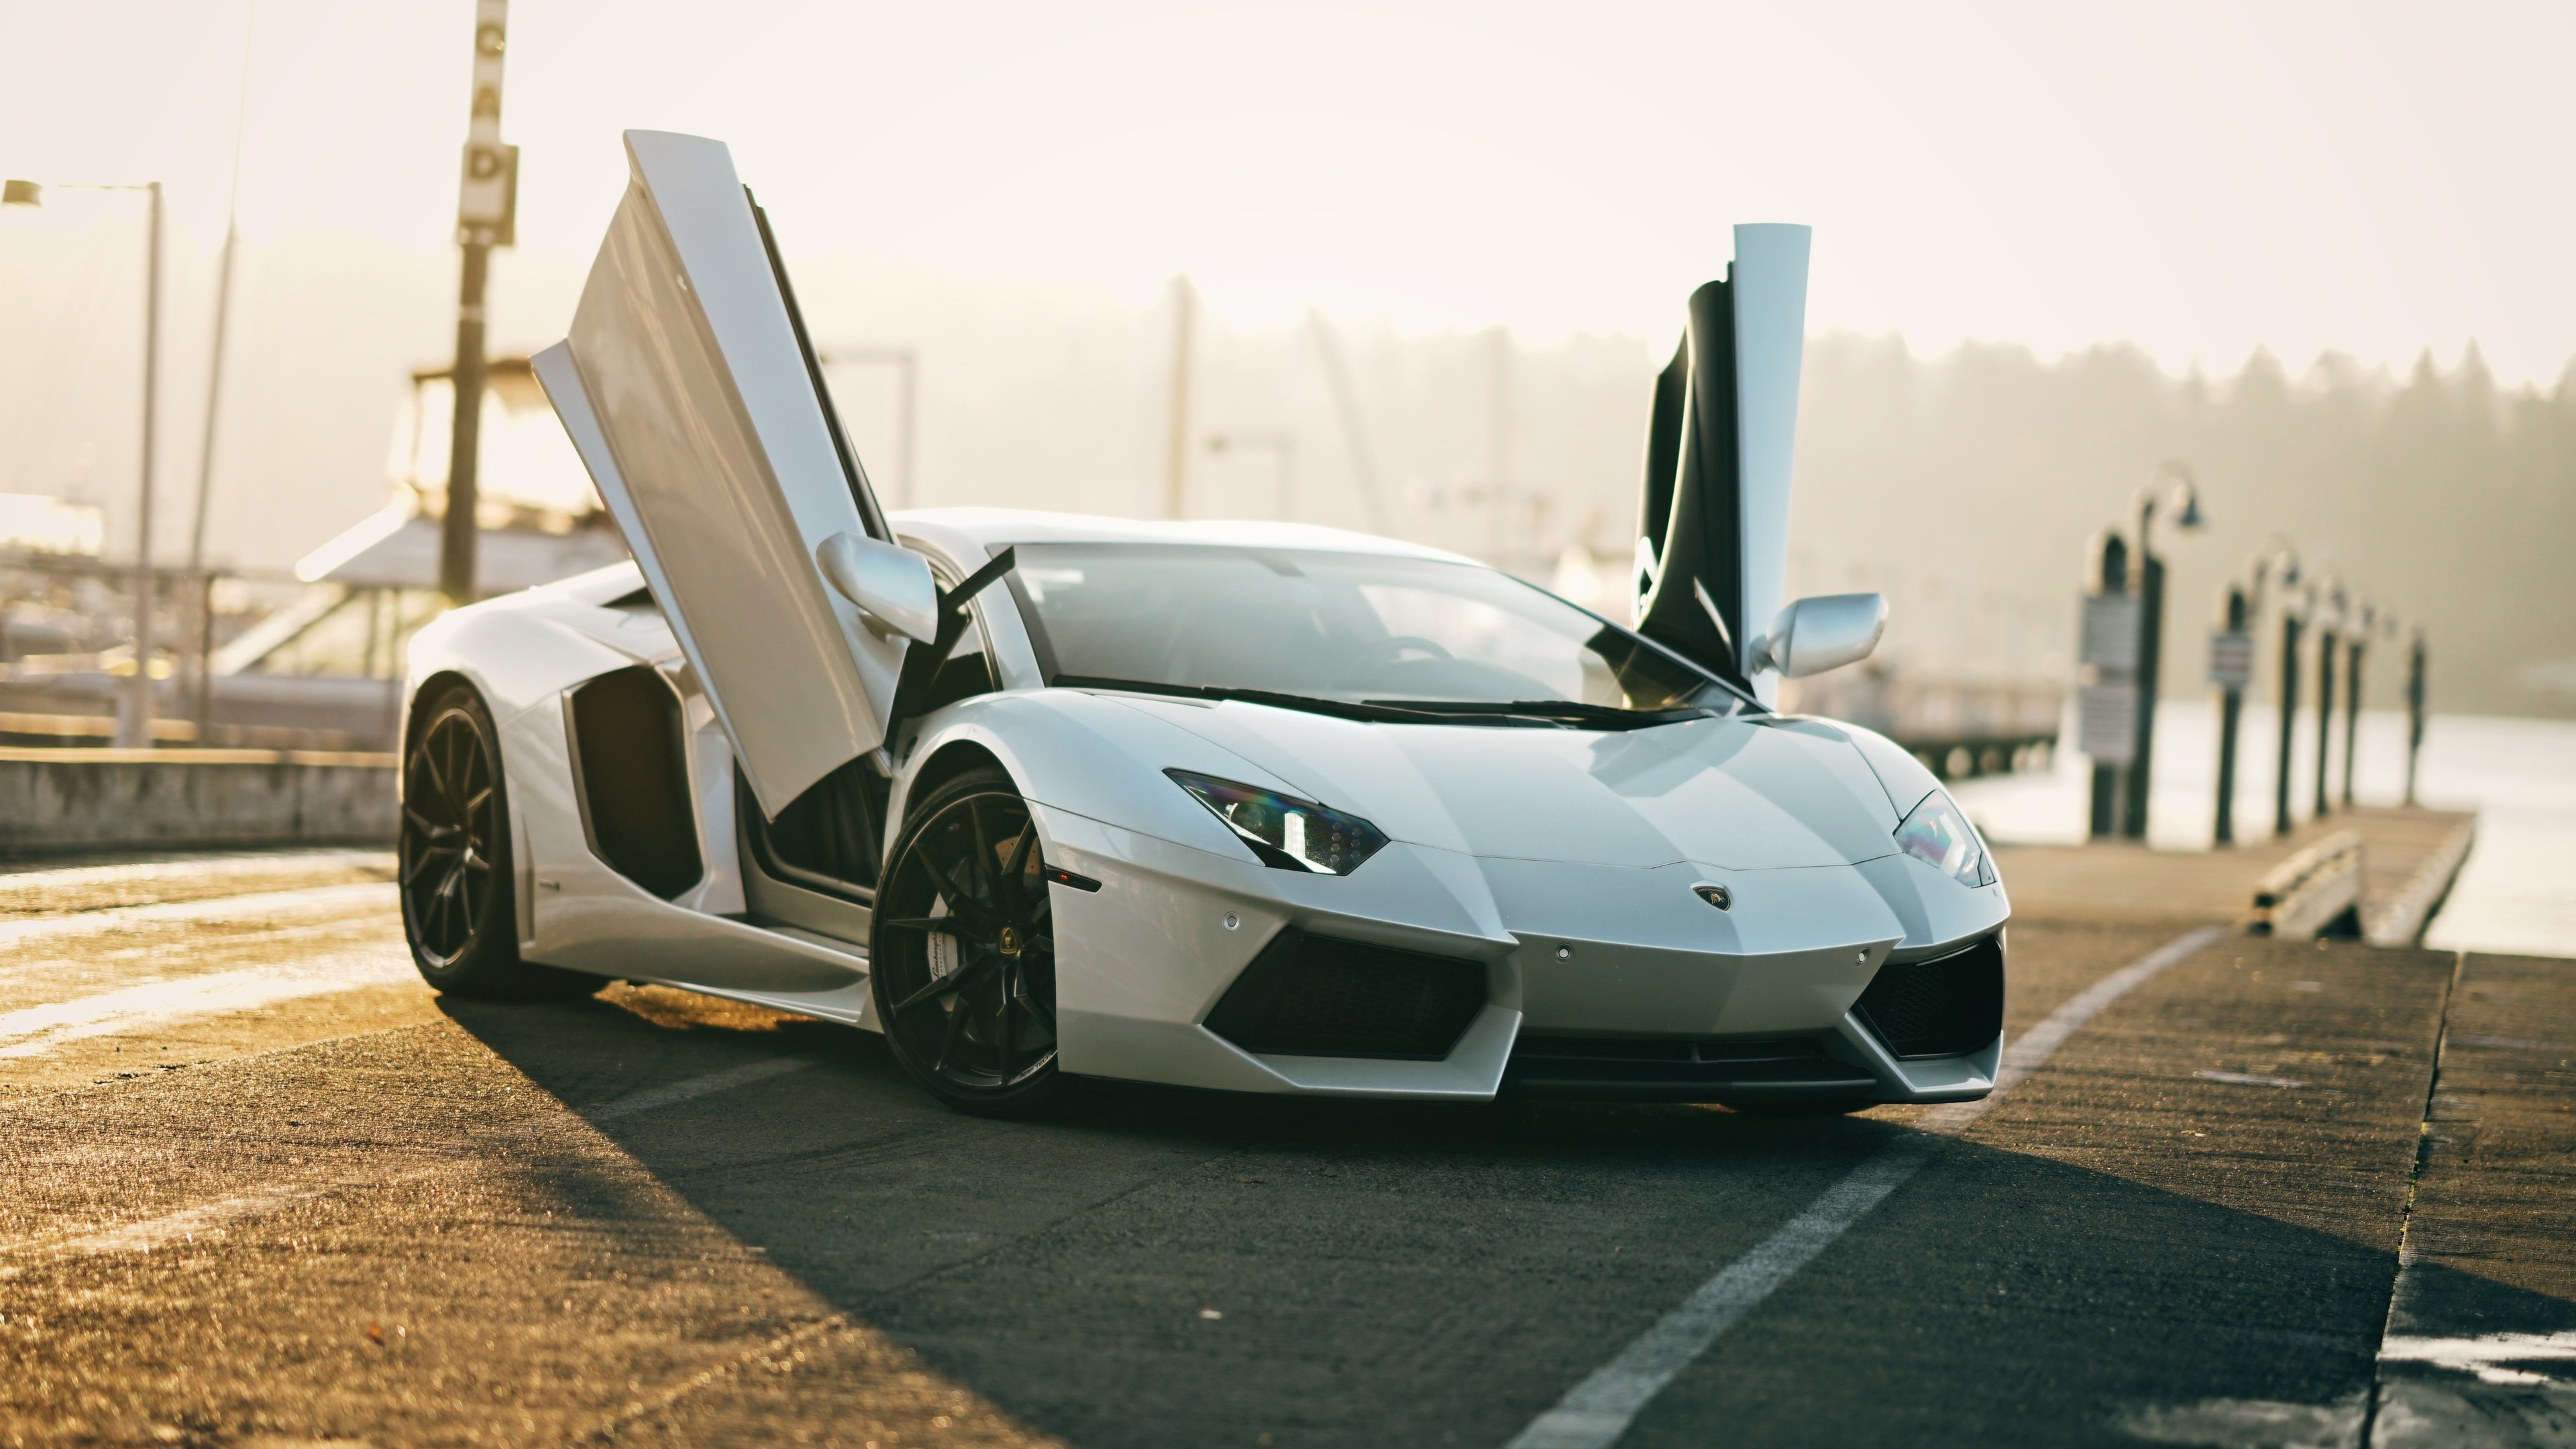 4k white lamborghini aventador 1557260857 - 4k White Lamborghini Aventador - lamborghini wallpapers, lamborghini aventador wallpapers, hd-wallpapers, cars wallpapers, 4k-wallpapers